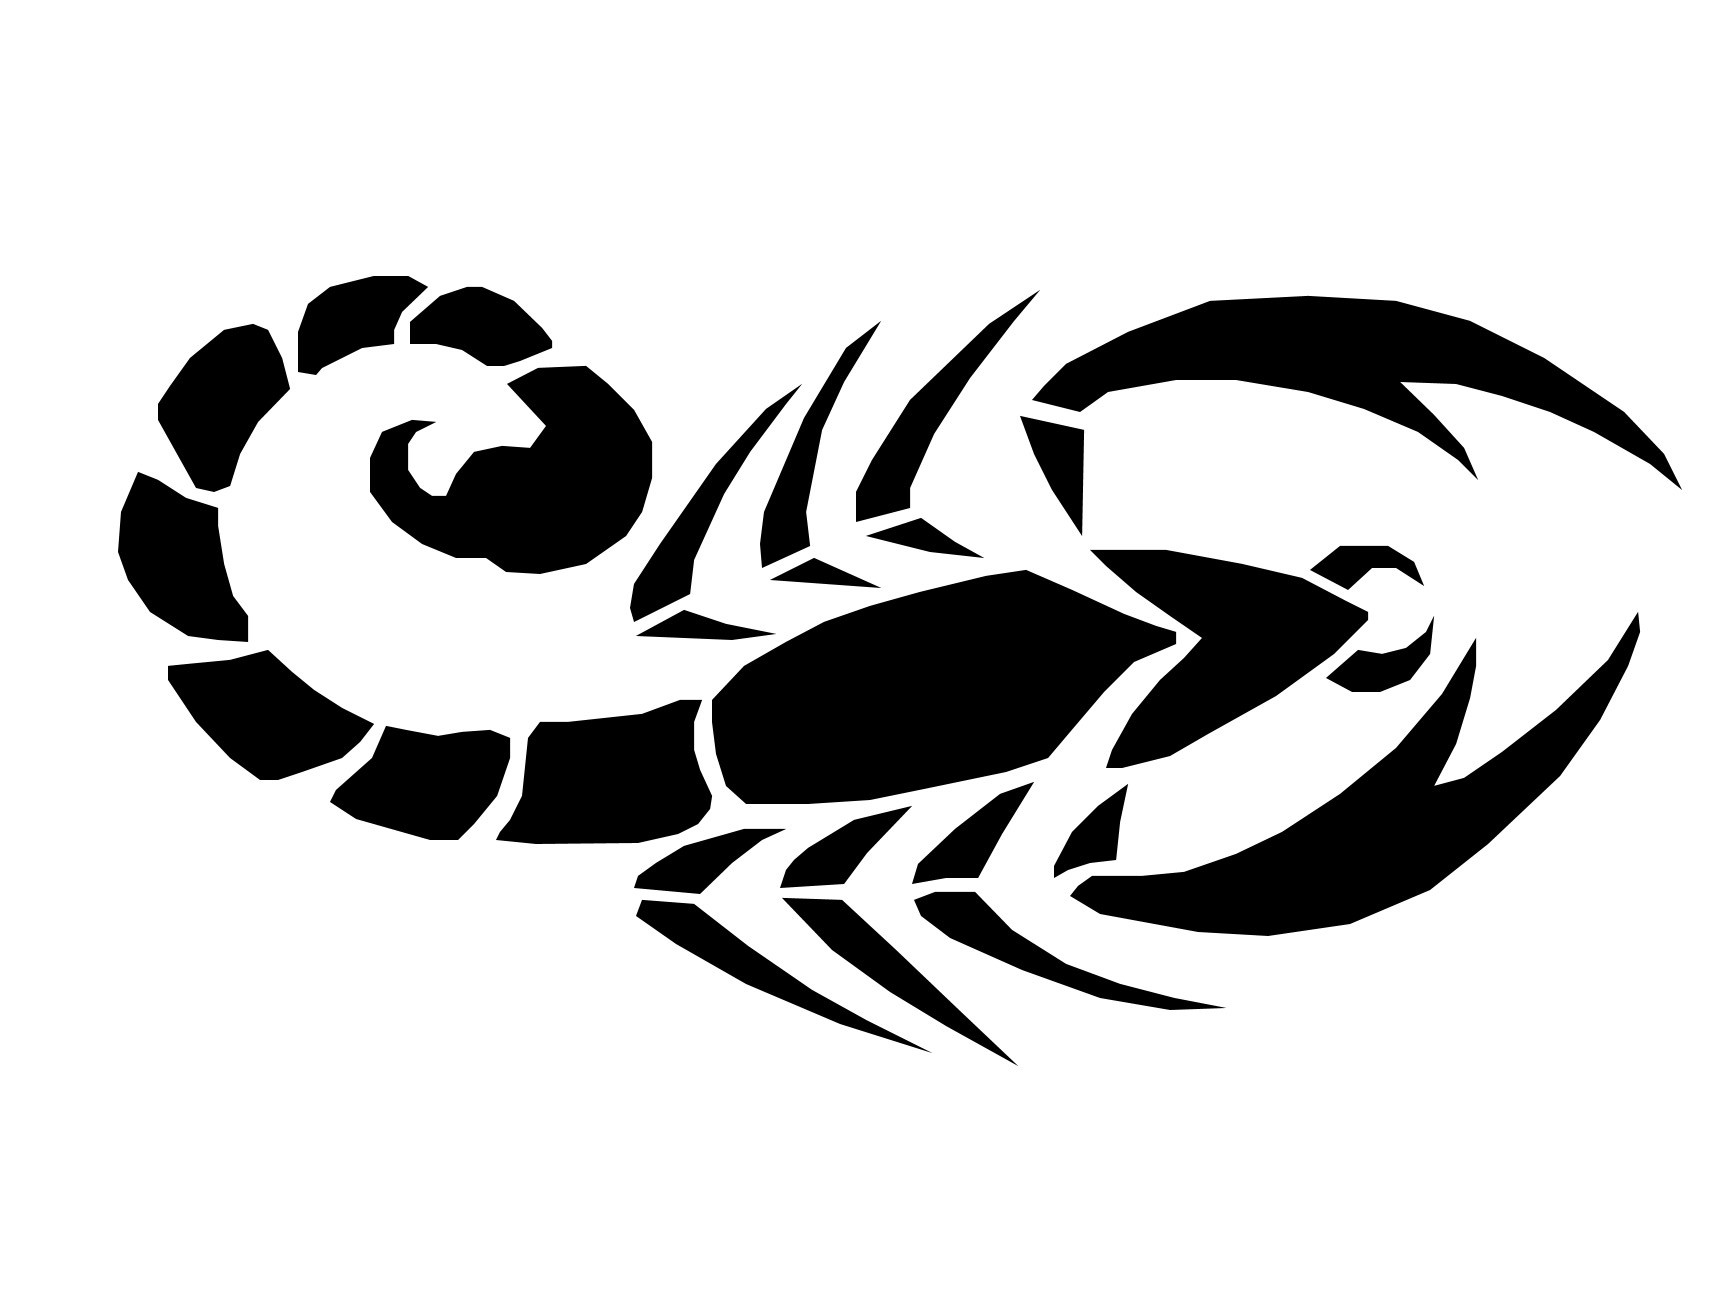 New Tribal Scorpion Tattoo photo - 2 - Scorpion Tattoos PNG - Scorpion HD PNG